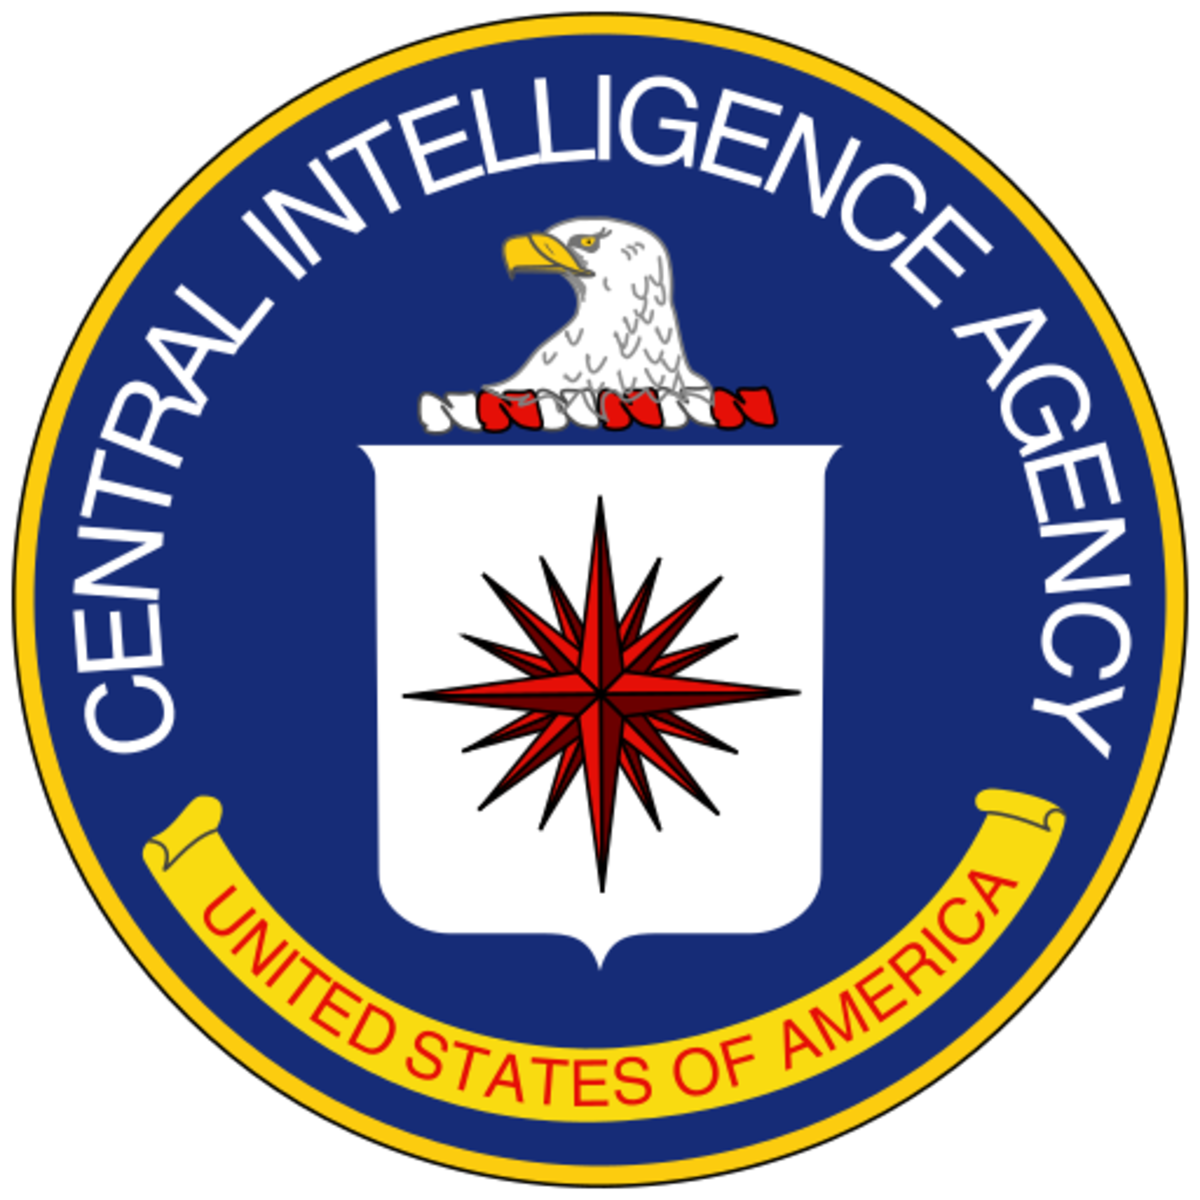 Central Intelligence Agency crest